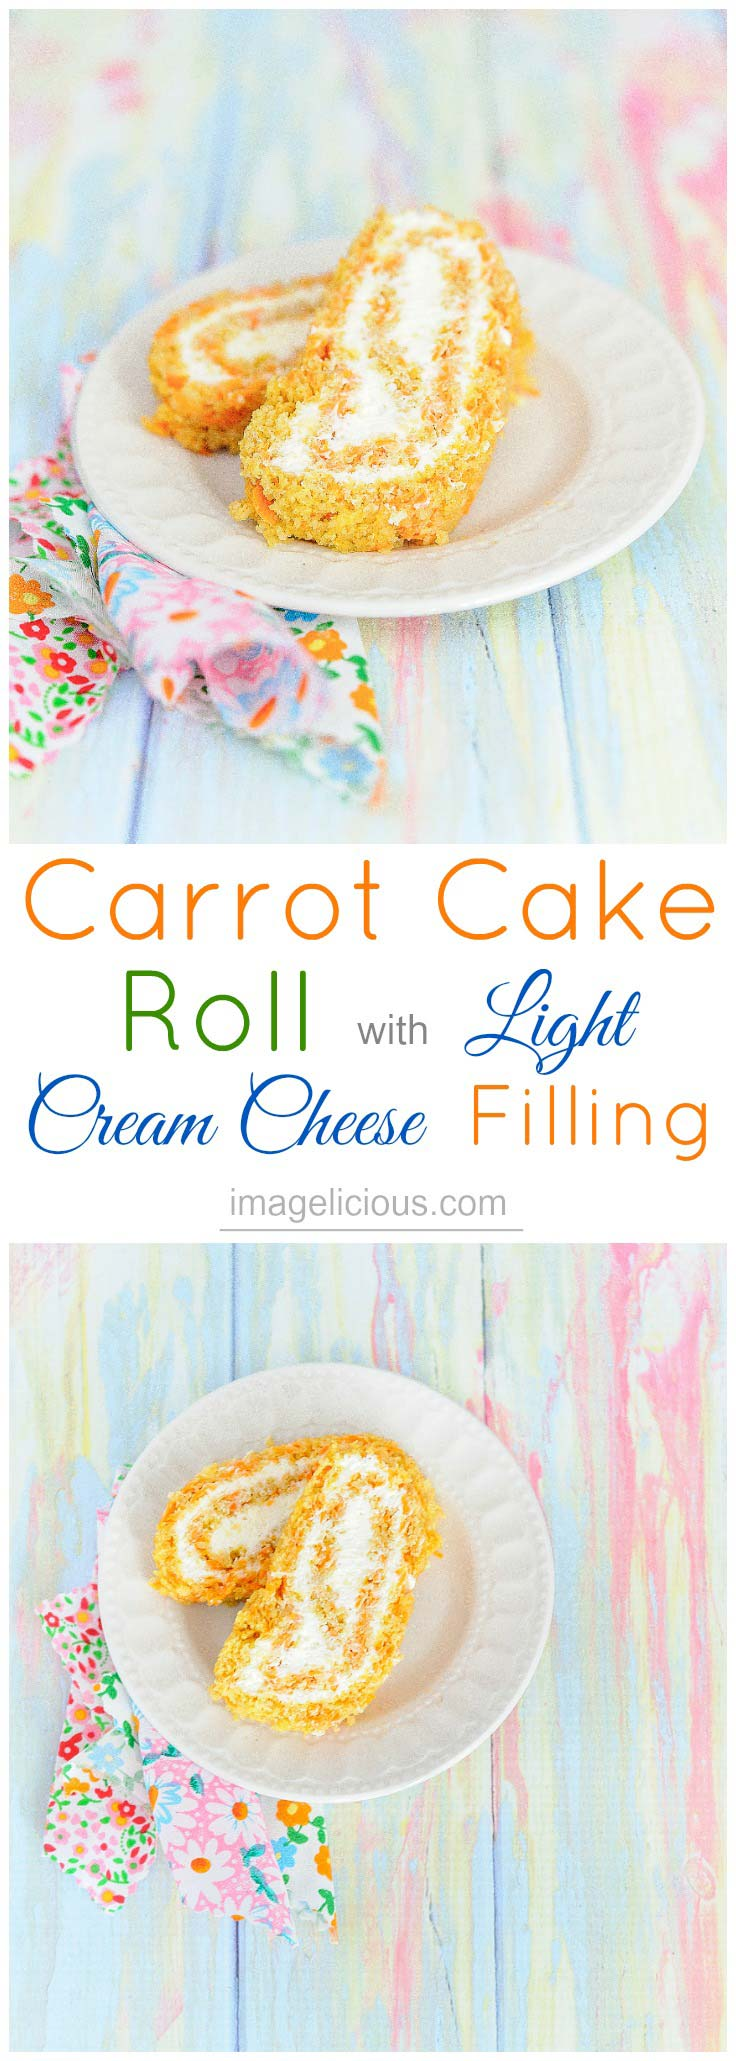 This Carrot Cake Roll with Light Cream Cheese Filling is a perfect spring dessert. The cake has no oil or butter and is lighter and healthier than traditional Carrot Cakes | Imagelicious